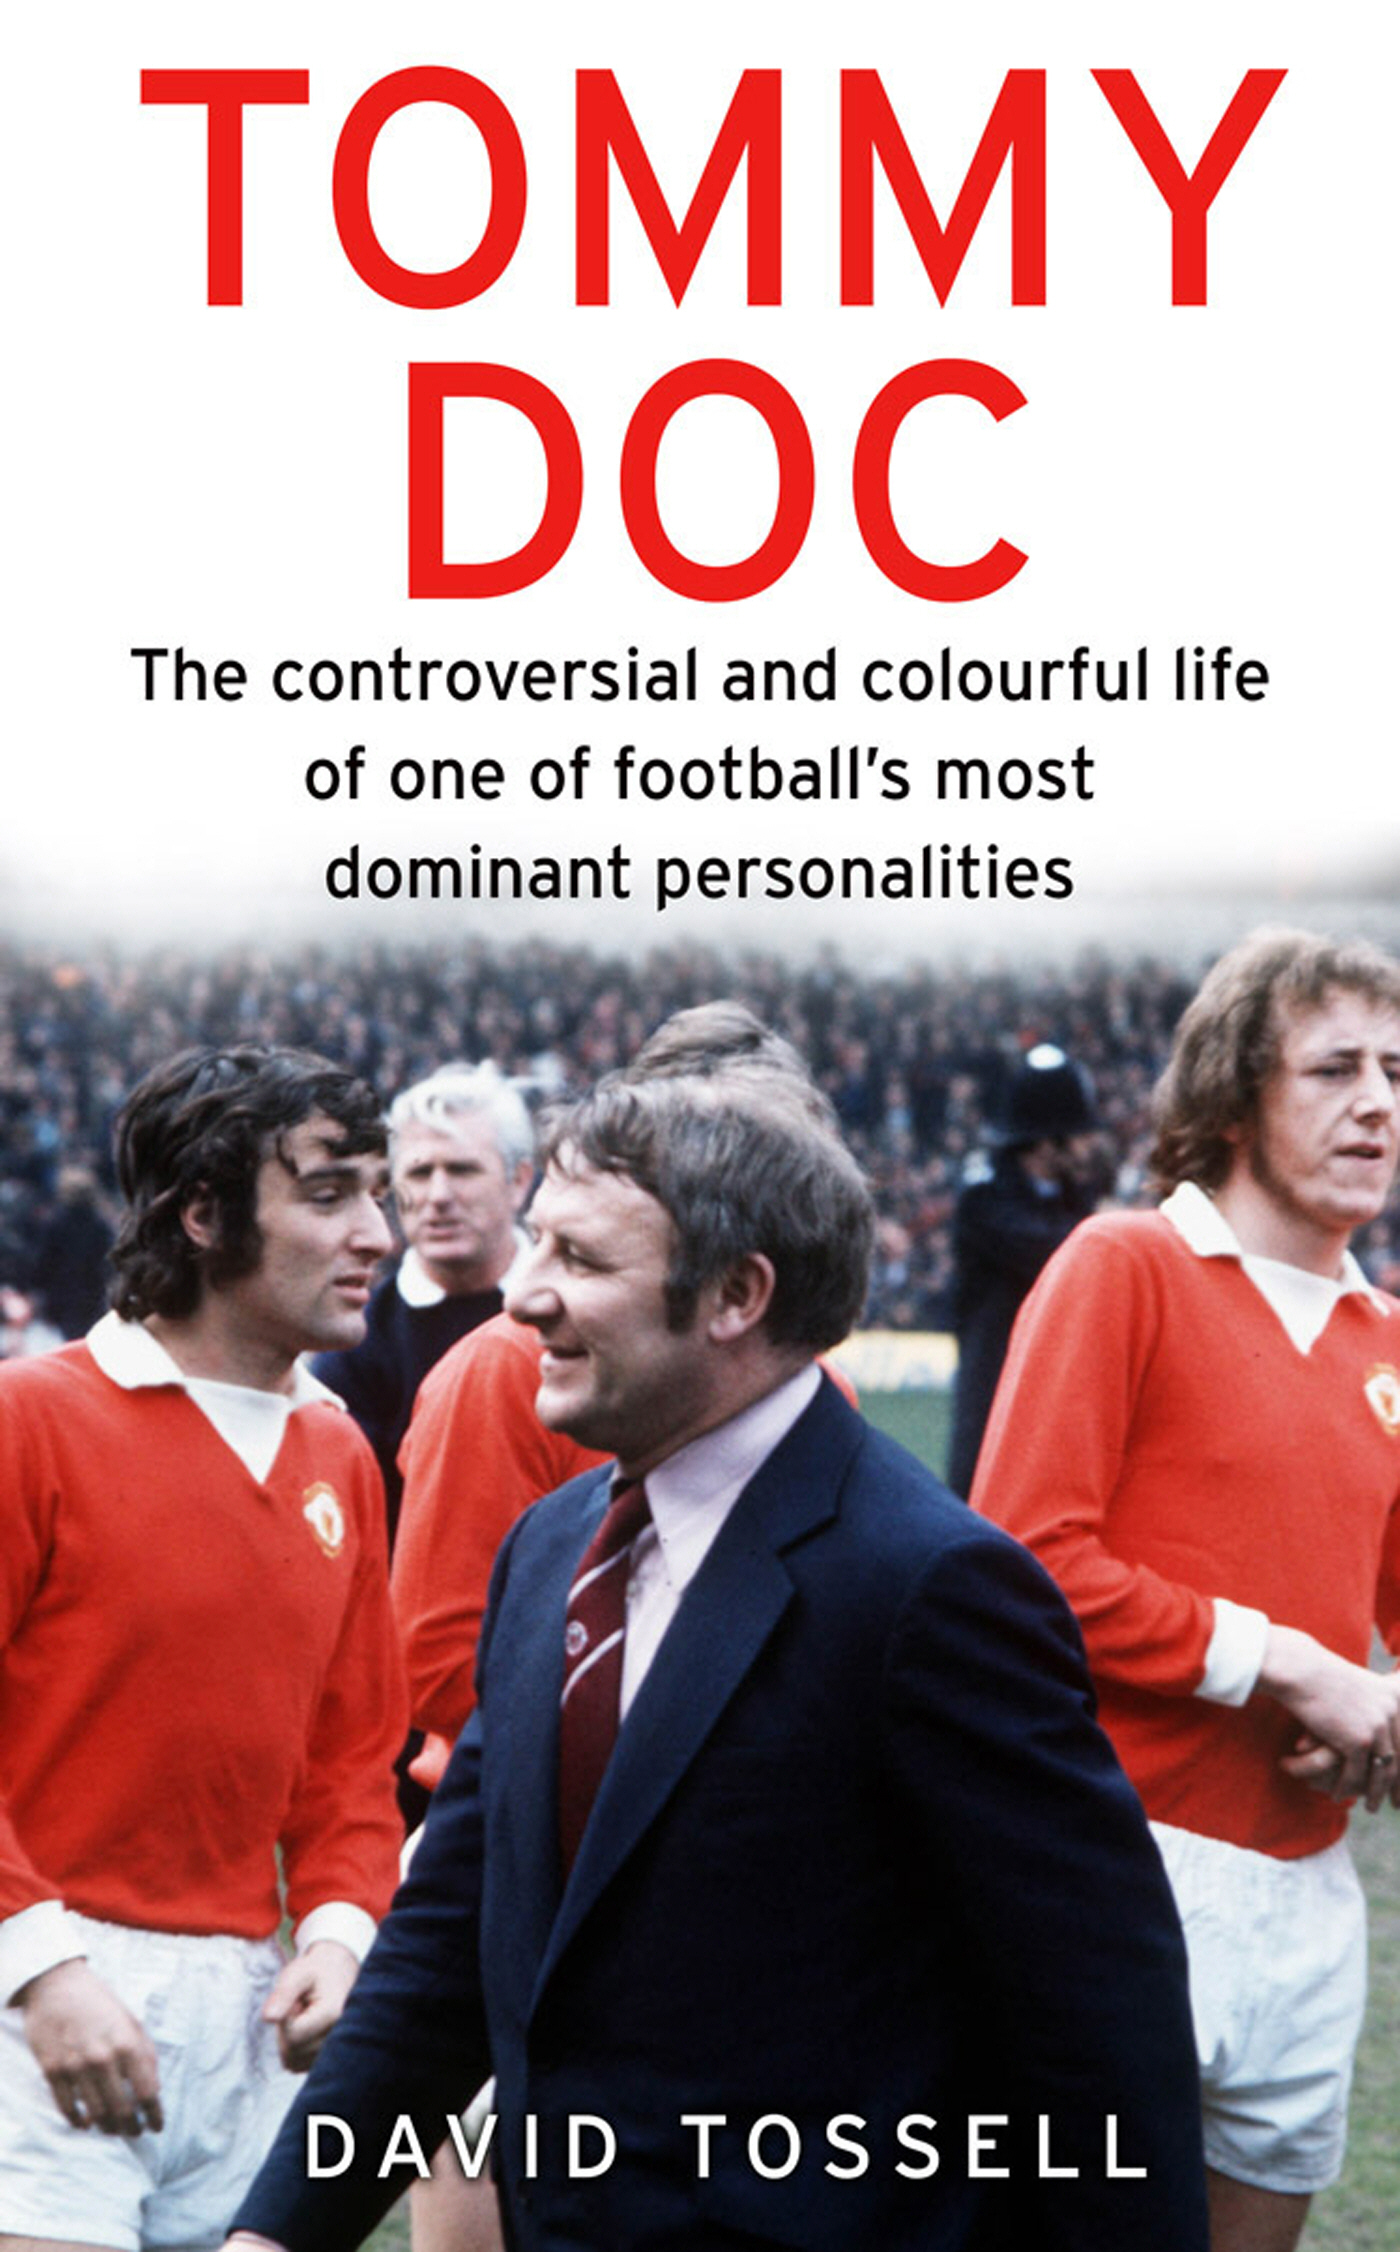 Tommy Doc The Controversial and Colourful Life of One of Football's Most Dominant Personalities